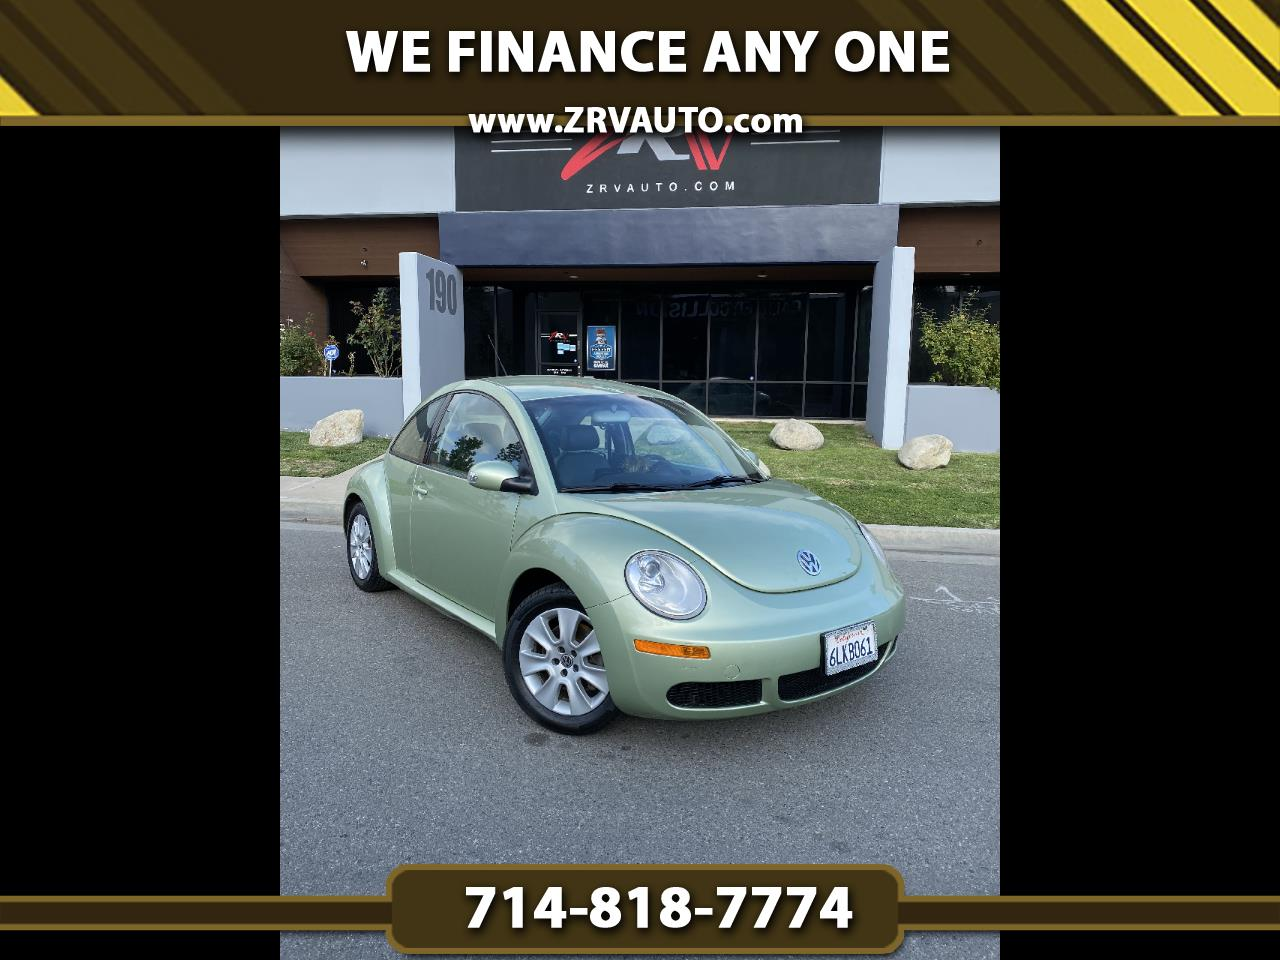 Volkswagen New Beetle Coupe 2dr Man S PZEV 2009